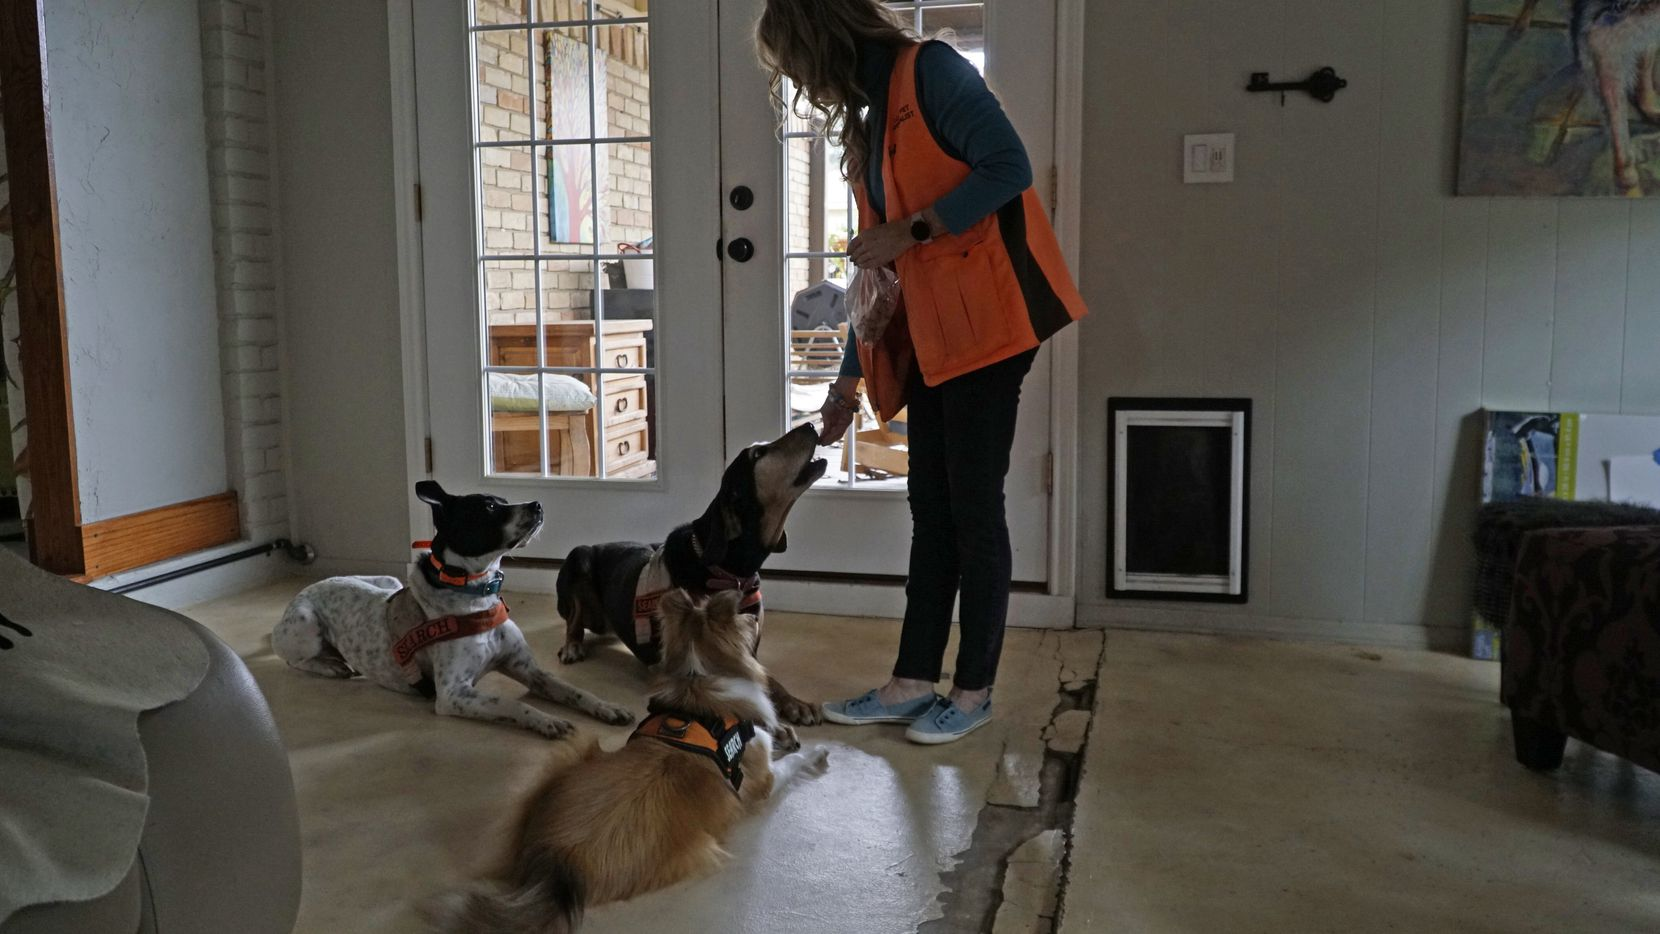 Bonnie McCririe-Hale with her dogs Idabel, a black & tan coon hound, Buck, a pointer pit bull mix, and Kaio, a shetland sheep dog, at her home in Grapevine, Texas.